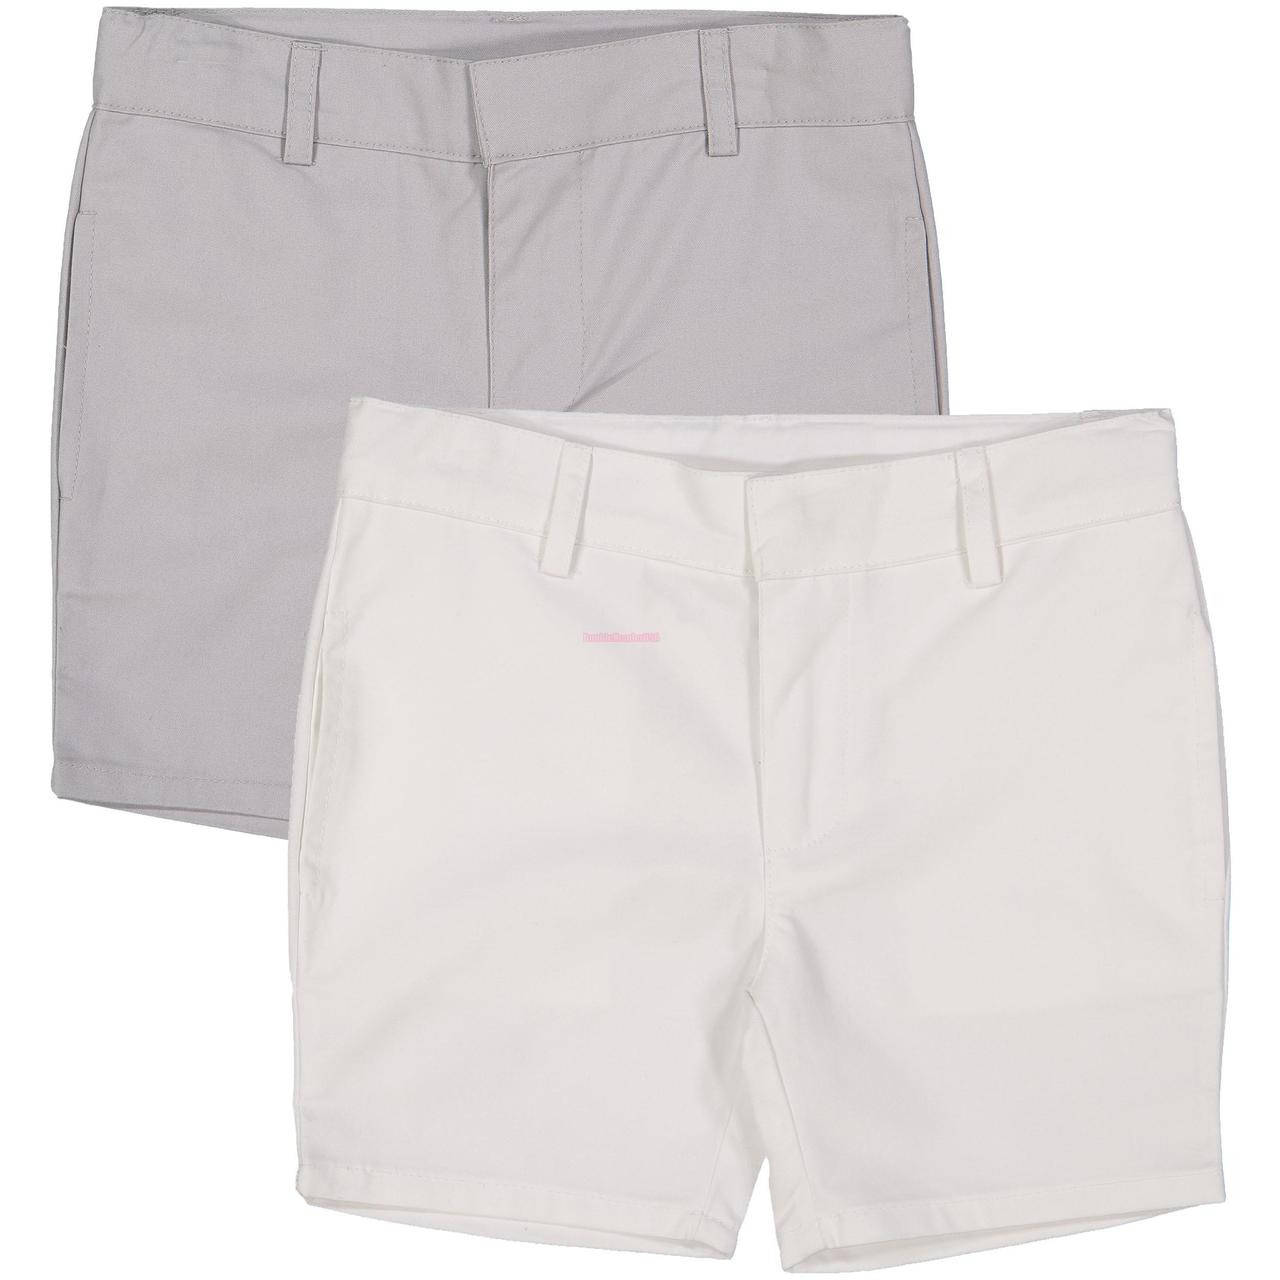 ANALOGIE BY LIL LEGS BOYS COTTON SHORTS